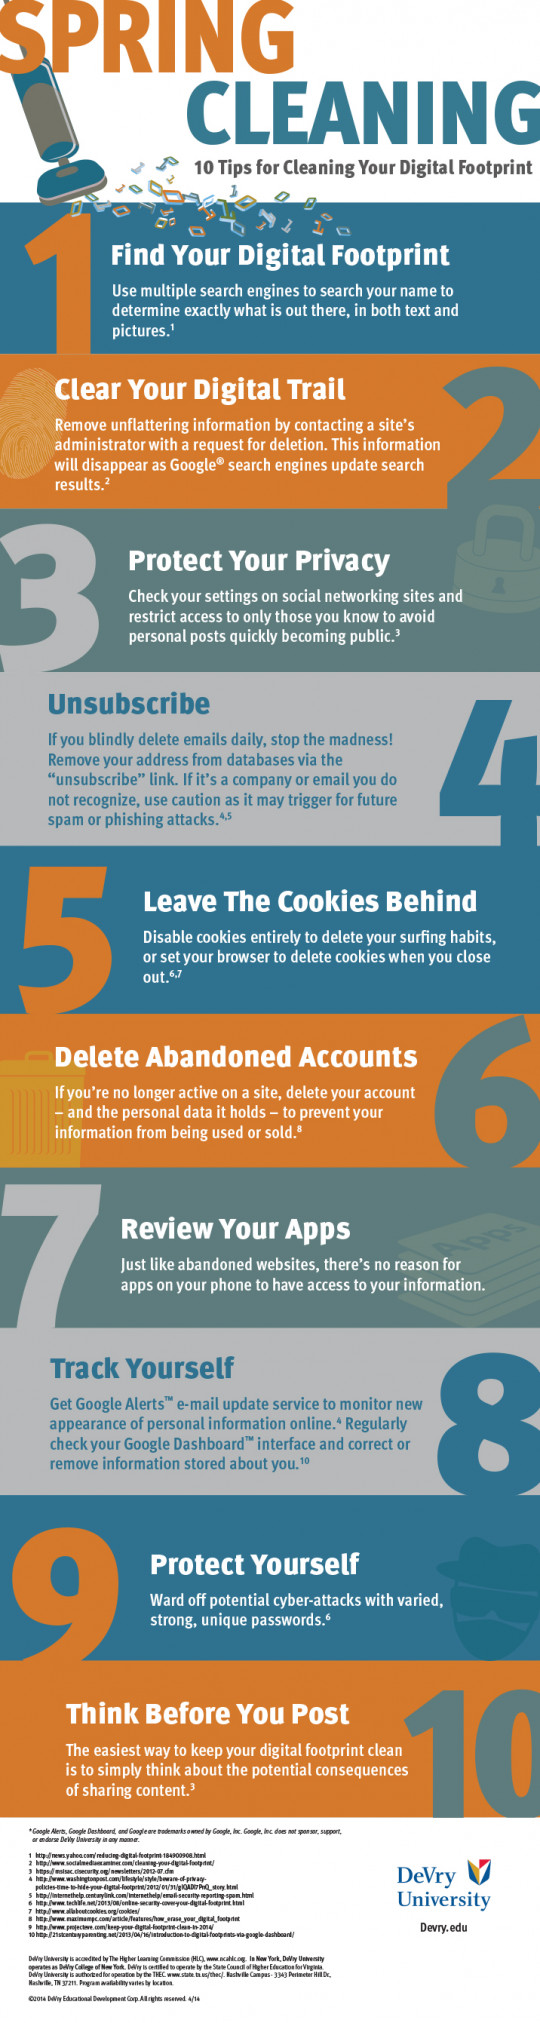 Spring Cleaning - 10 Tips for a Cleaning Your Digital Footprint